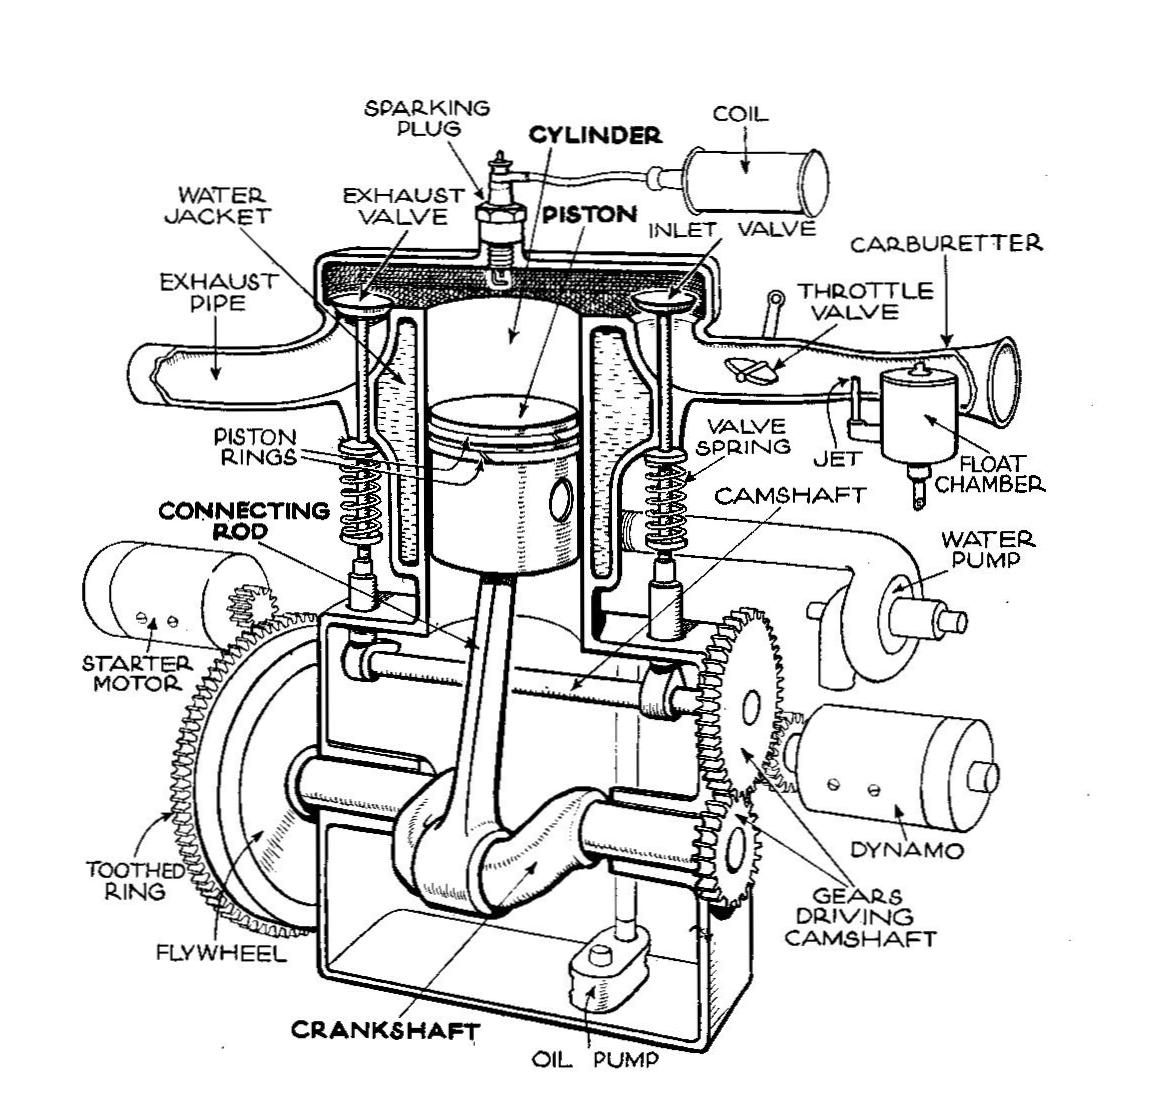 Auto Mobile Engine Parts Valve Diagram - Function Wiring Diagram